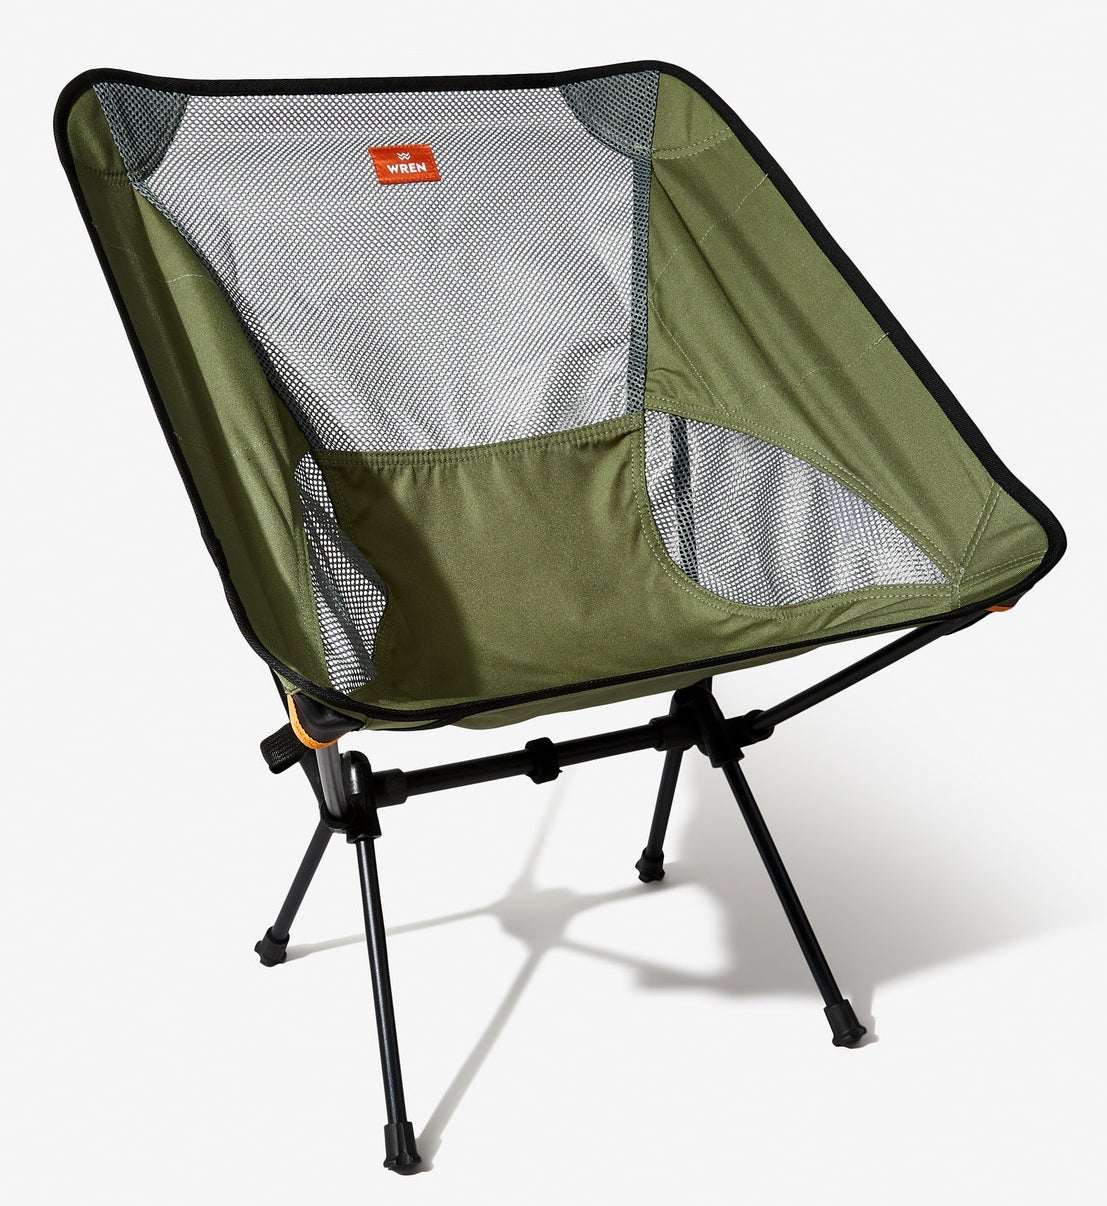 Collapsable canvas camping chair